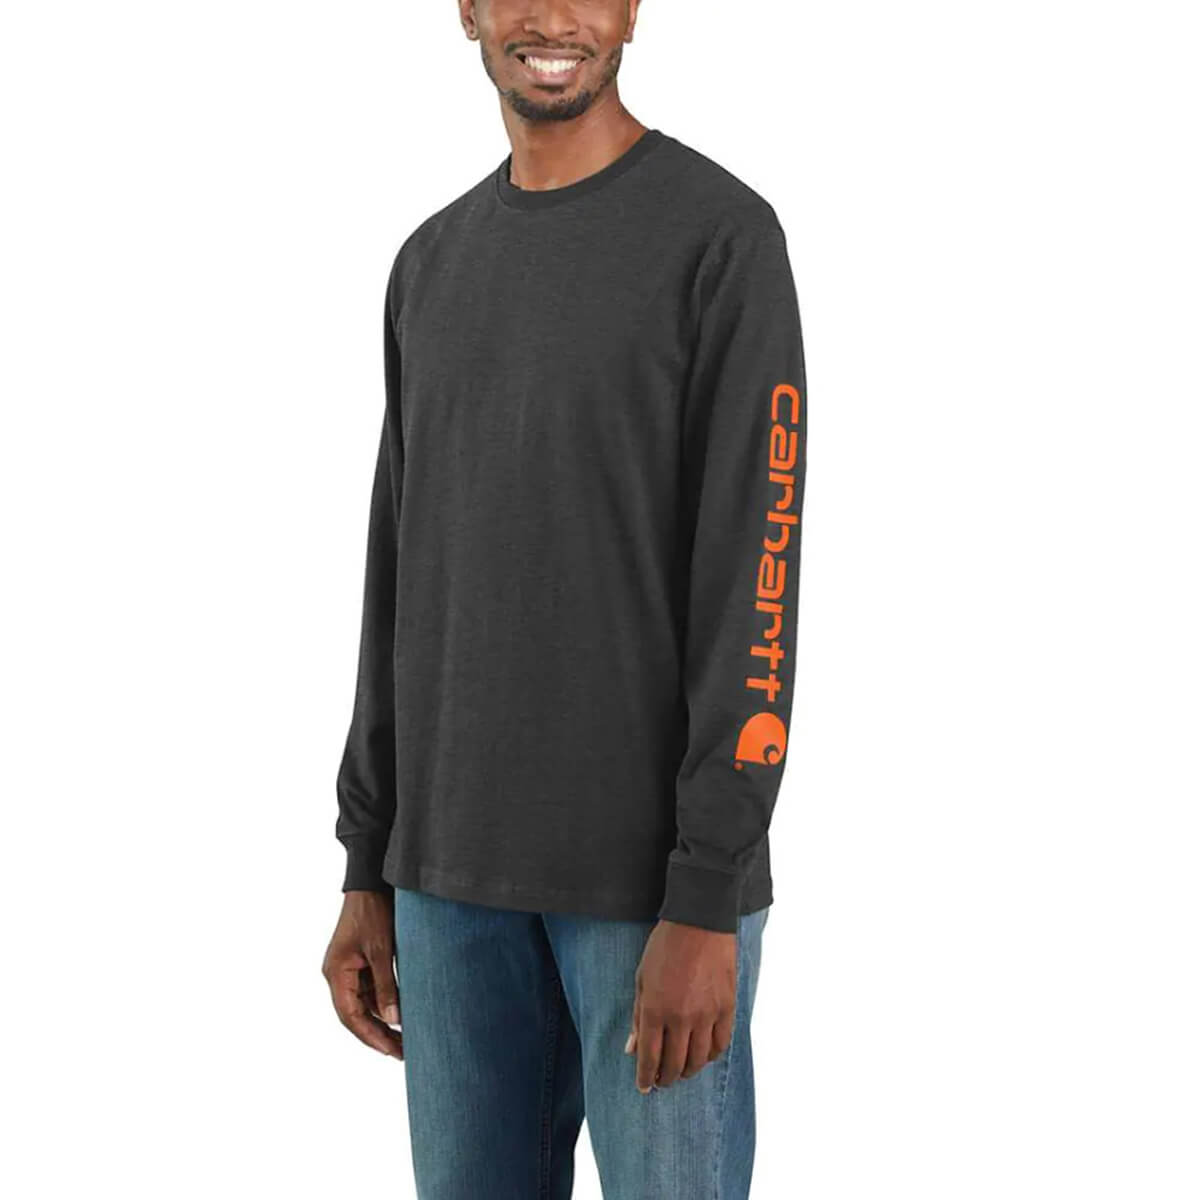 Carhartt Long-Sleeve Graphic Logo - Dark Grey